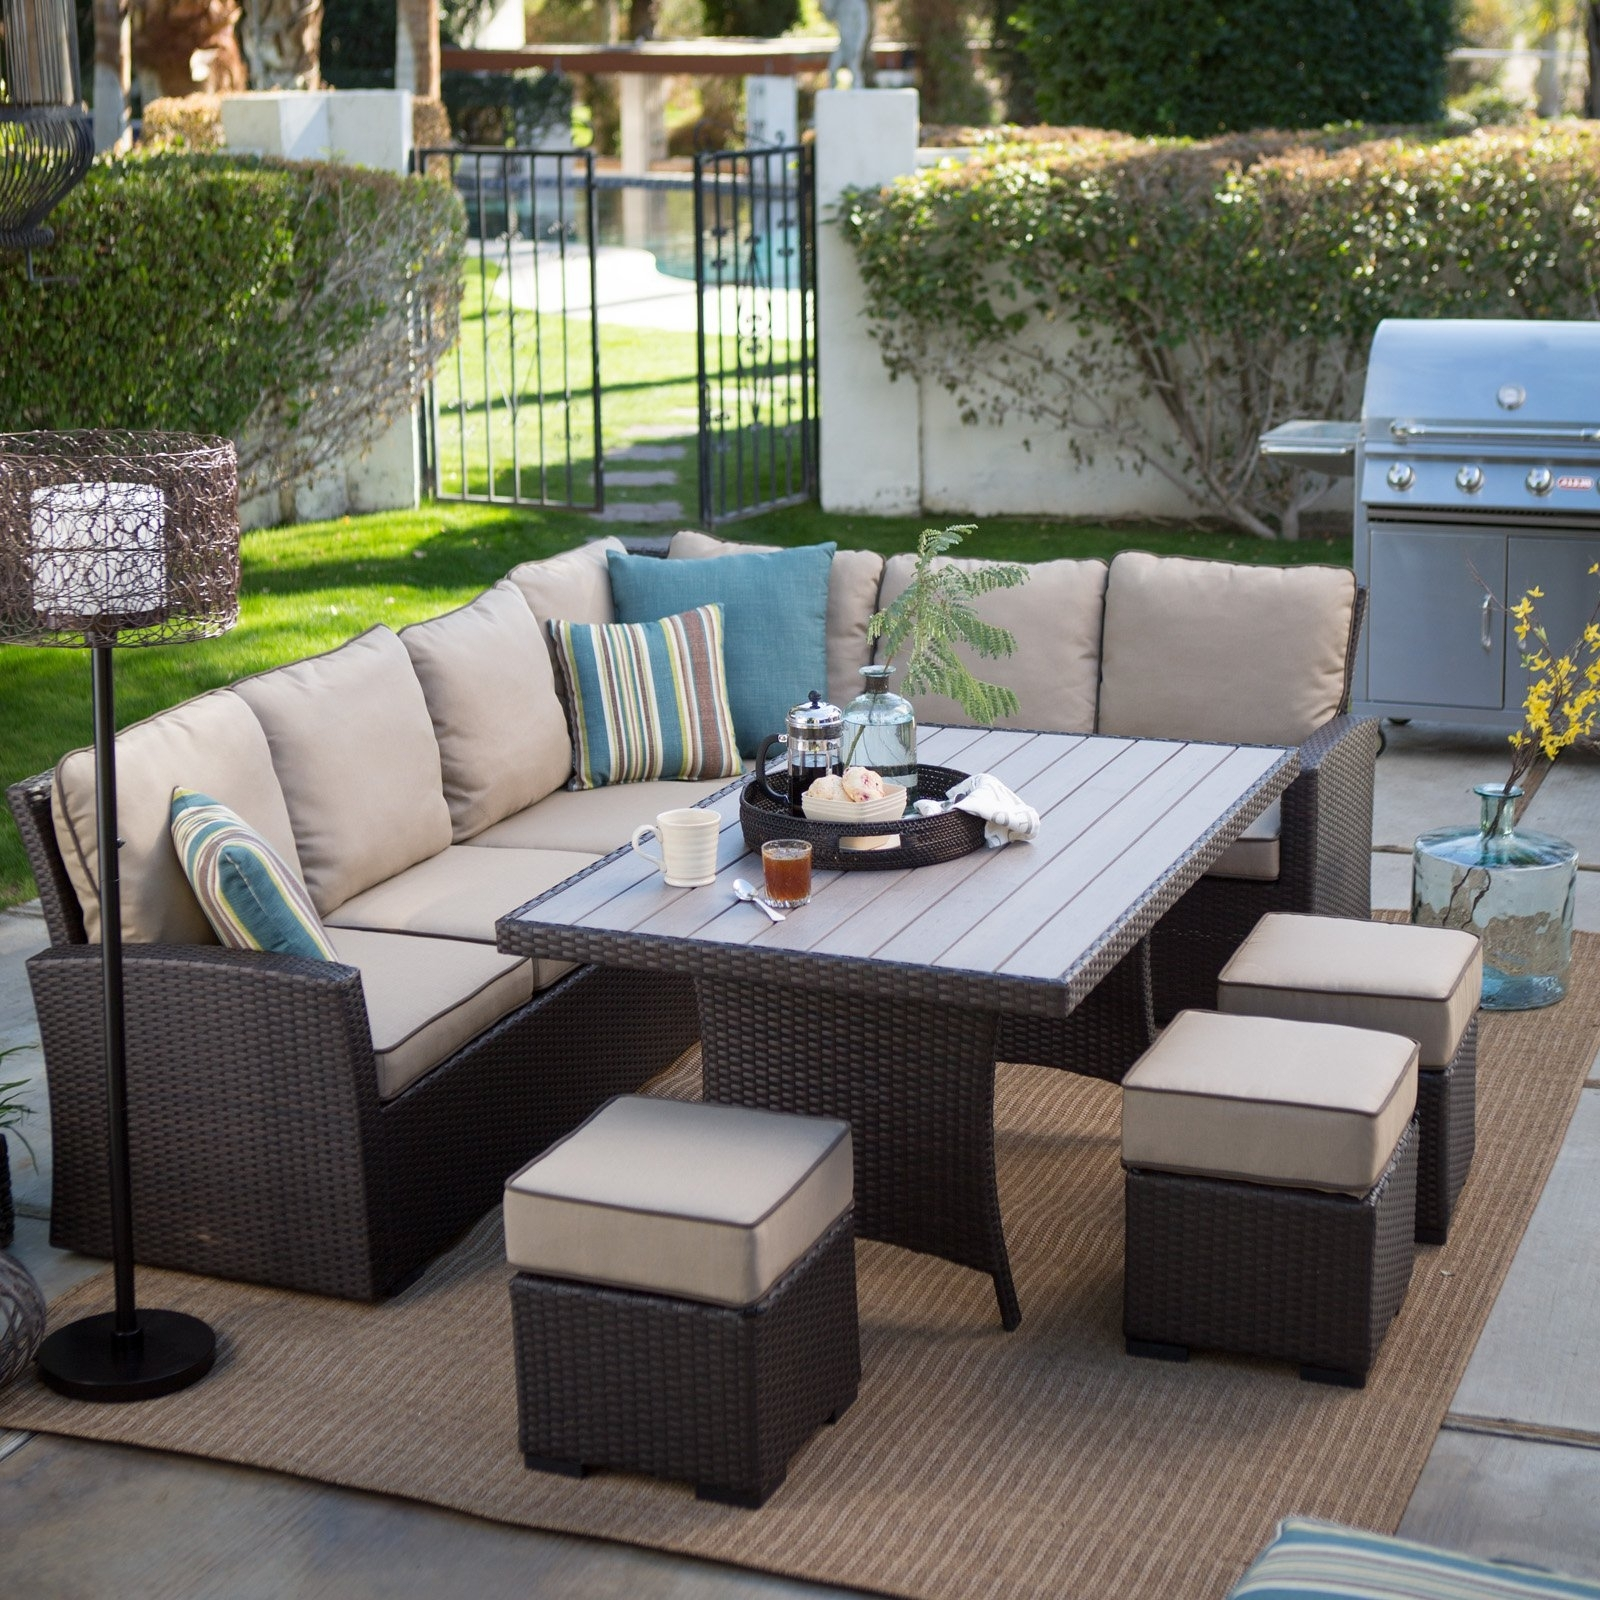 Belham Living Monticello All Weather Wicker Sofa Sectional Patio For Well Liked Conversation Patio Sets With Outdoor Sectionals (View 3 of 20)